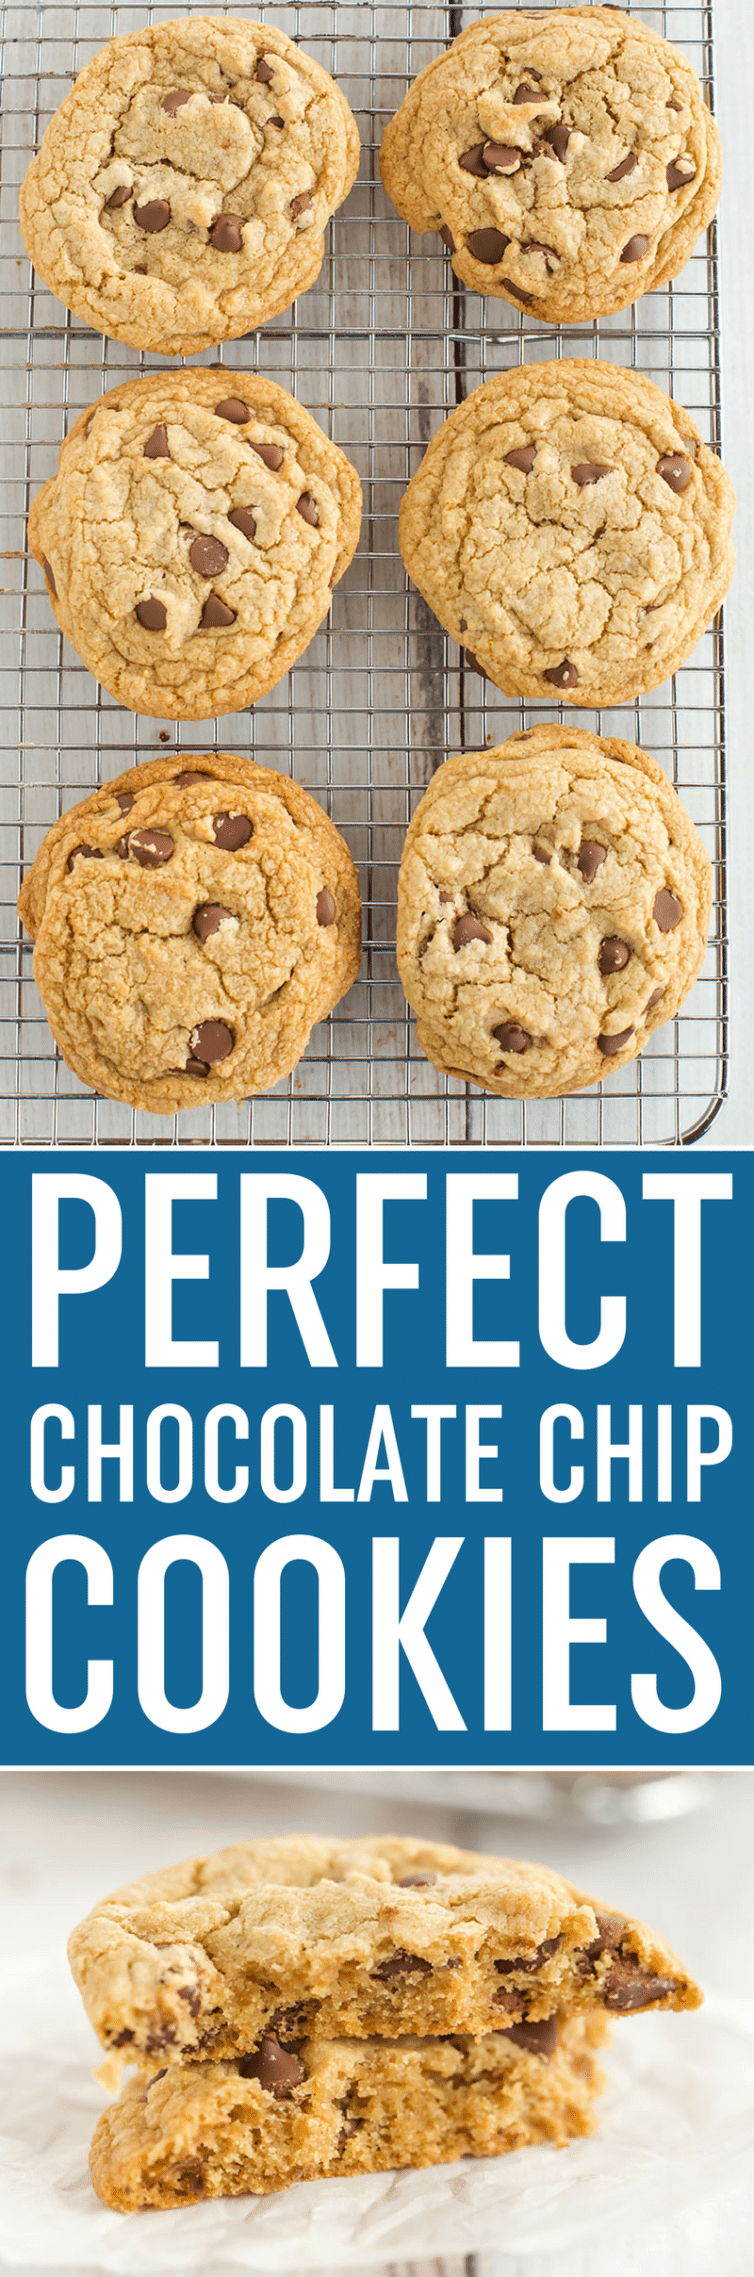 Classic Chewy Chocolate Chip Cookies by laura fisk   Food ...